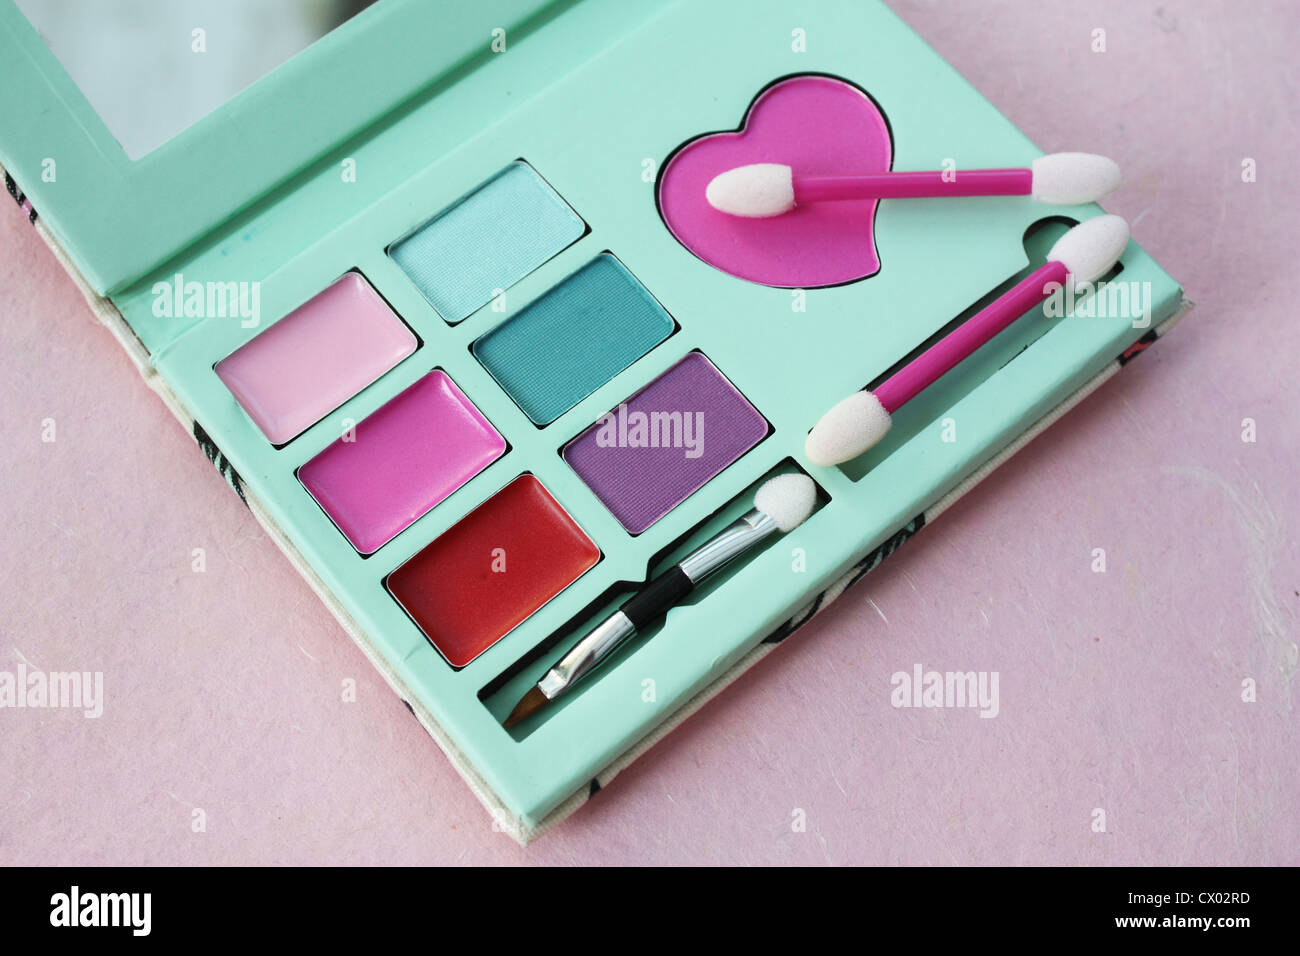 Colorful lipstick and eyeshadow makeup set - Stock Image